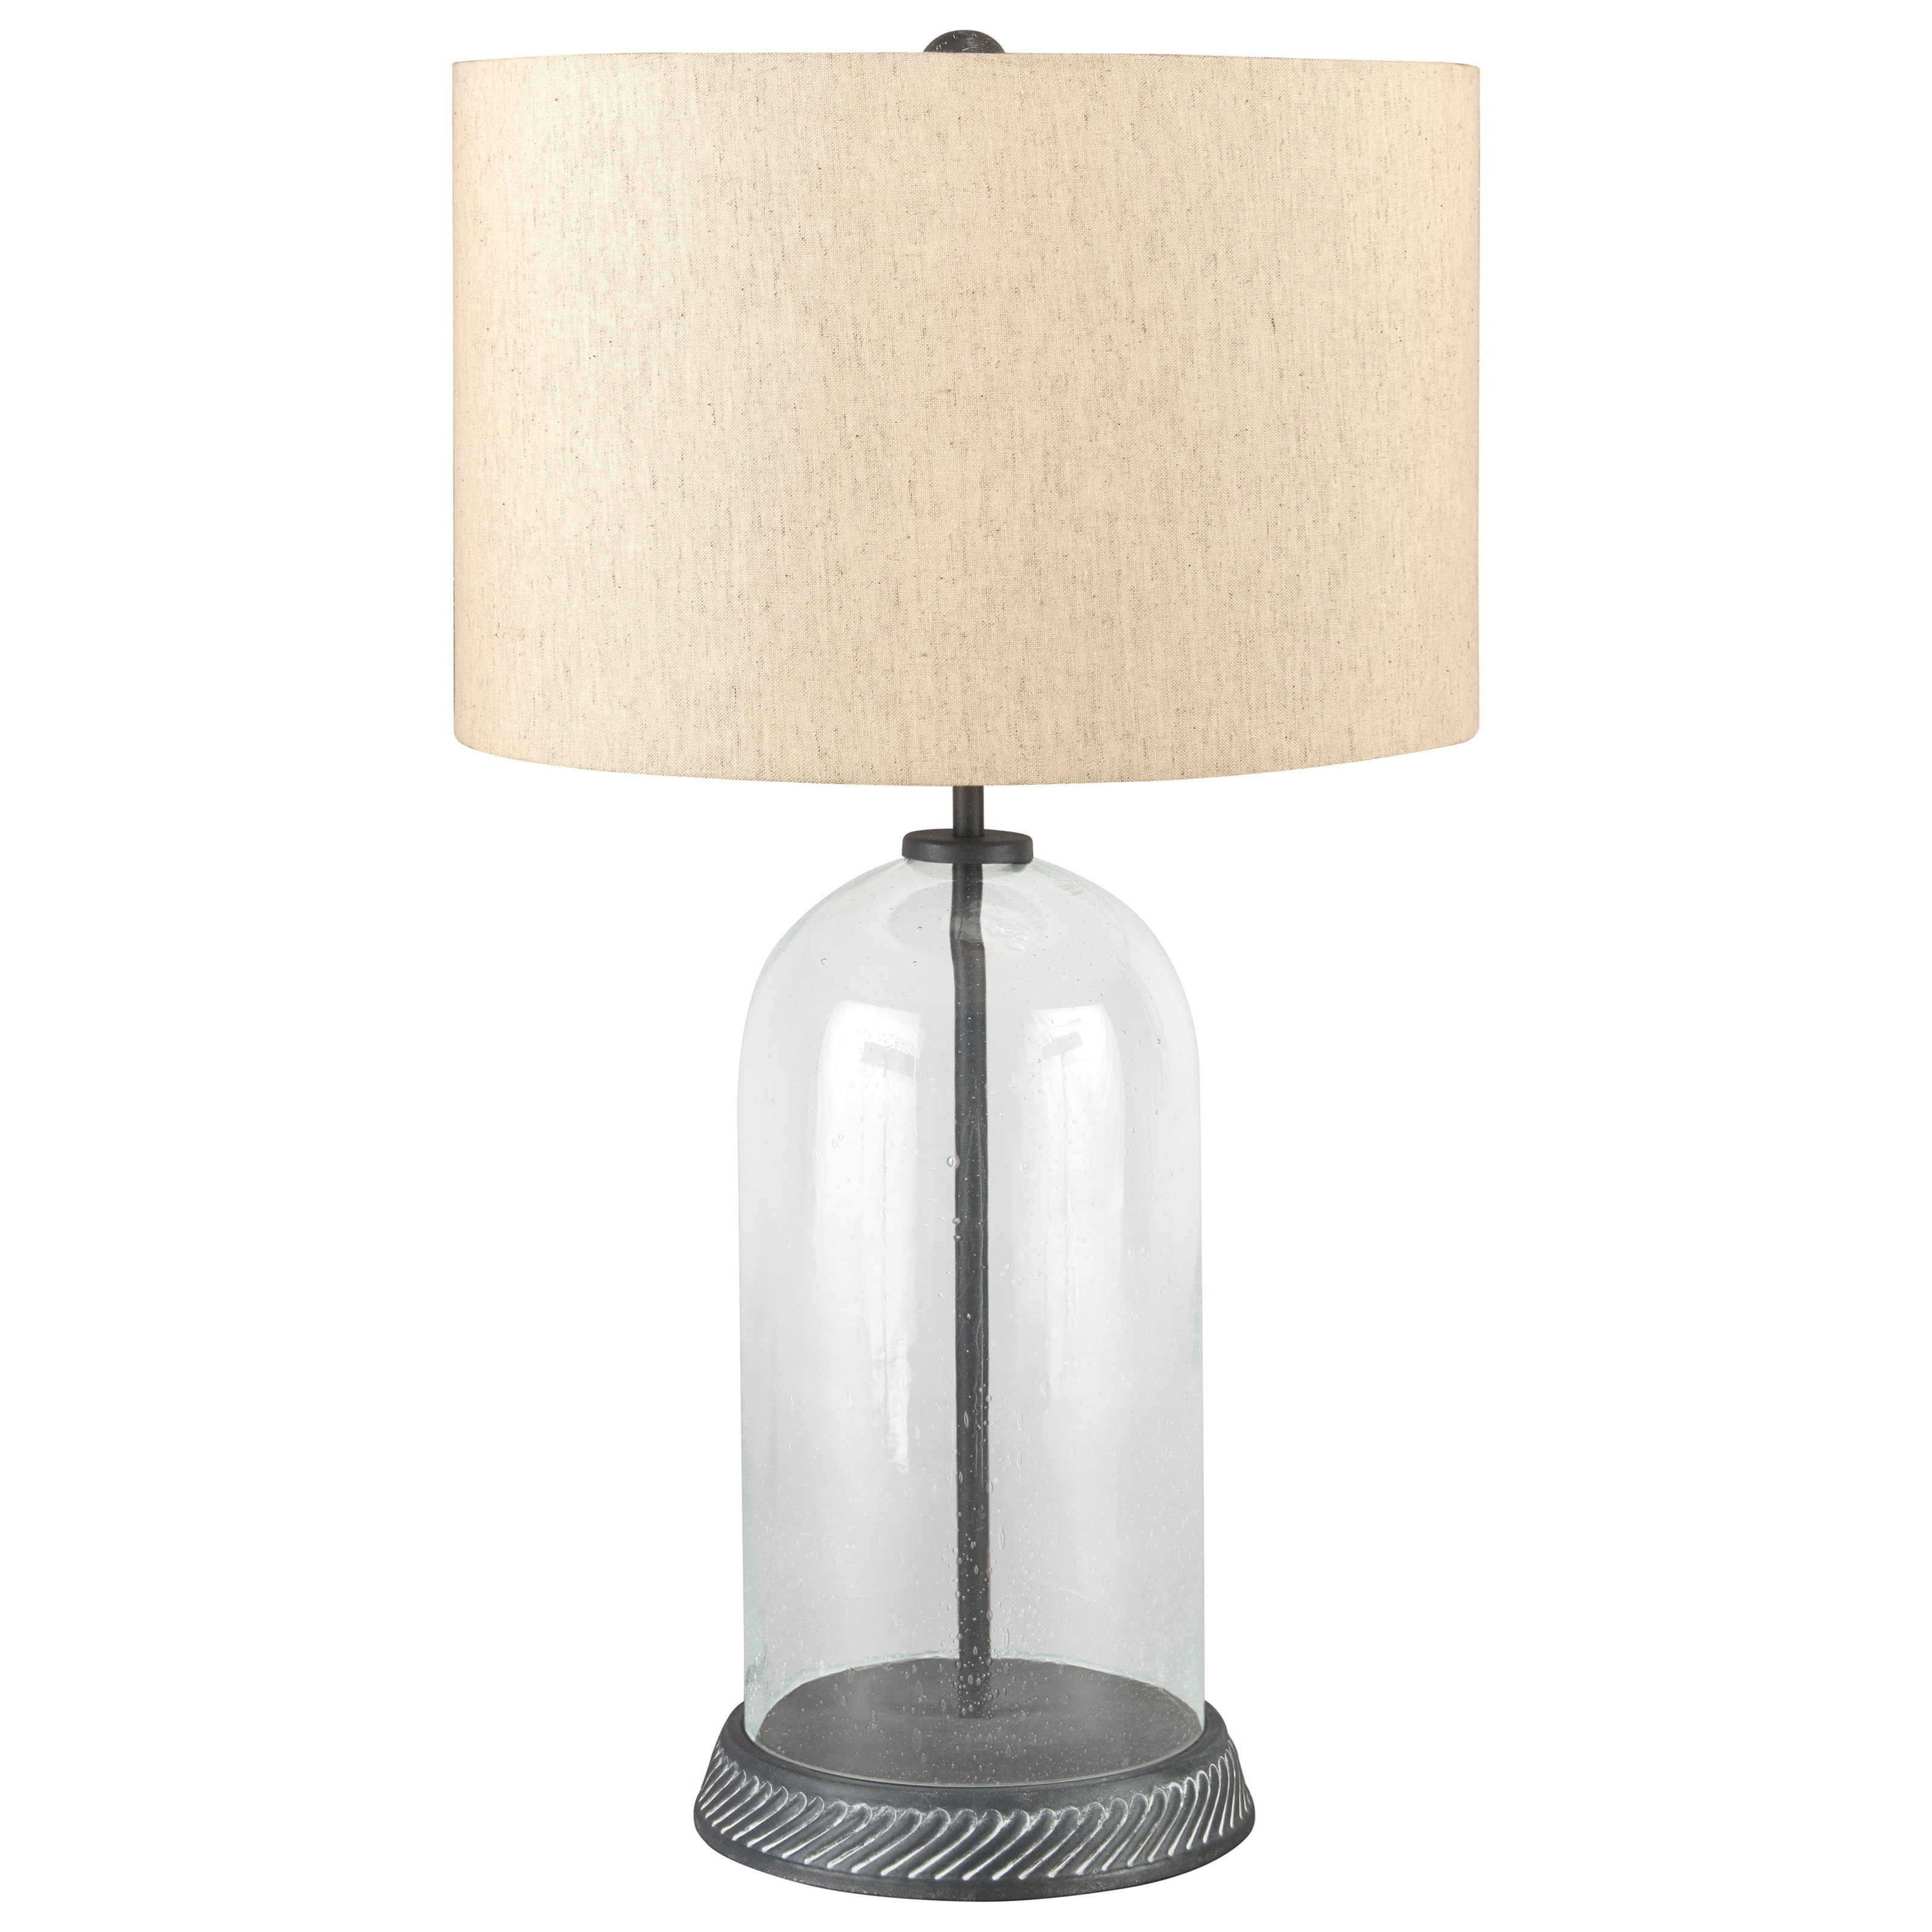 Lamps - Casual Manelin Clear/Gray Glass Table Lamp by Ashley (Signature Design) at Johnny Janosik